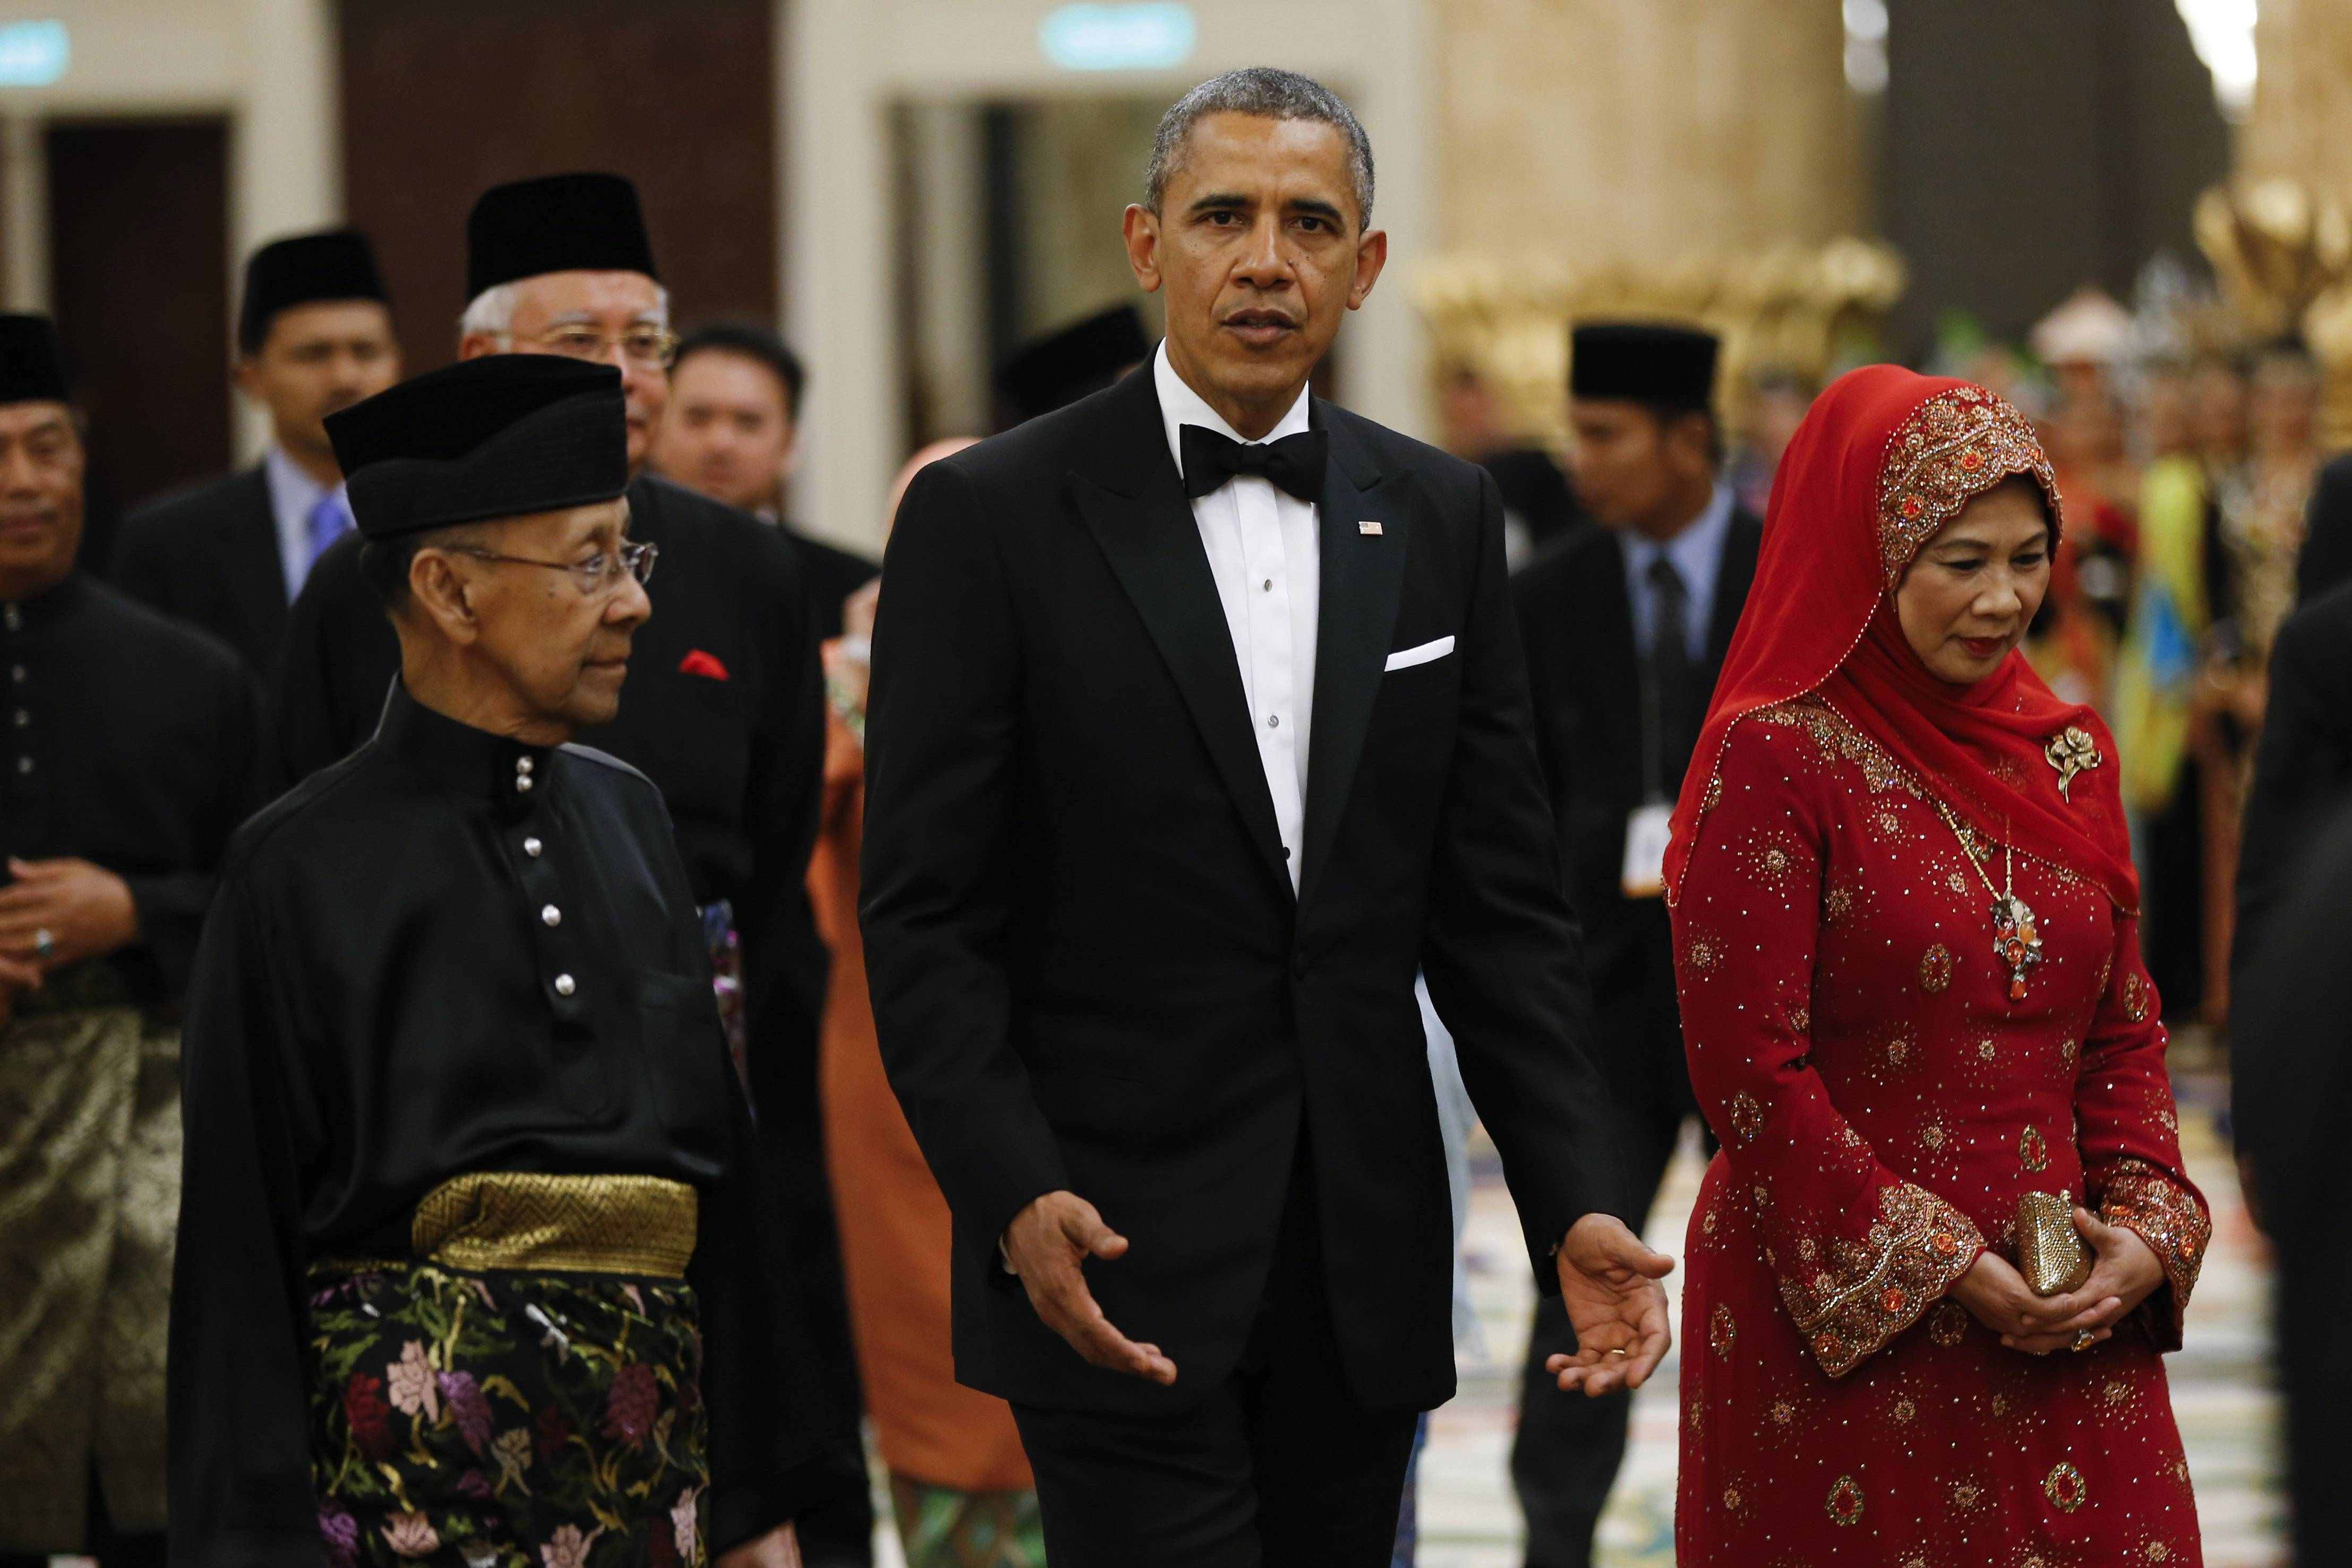 U.S. President Barack Obama, center, walks with Malaysian King Sultan Abdul Halim Mu'adzam Shah, left, and Malaysian Queen Haminah Hamidun as they arrive for a State Dinner at National Palace in Kuala Lumpur, Malaysia, Saturday, April 26, 2014.